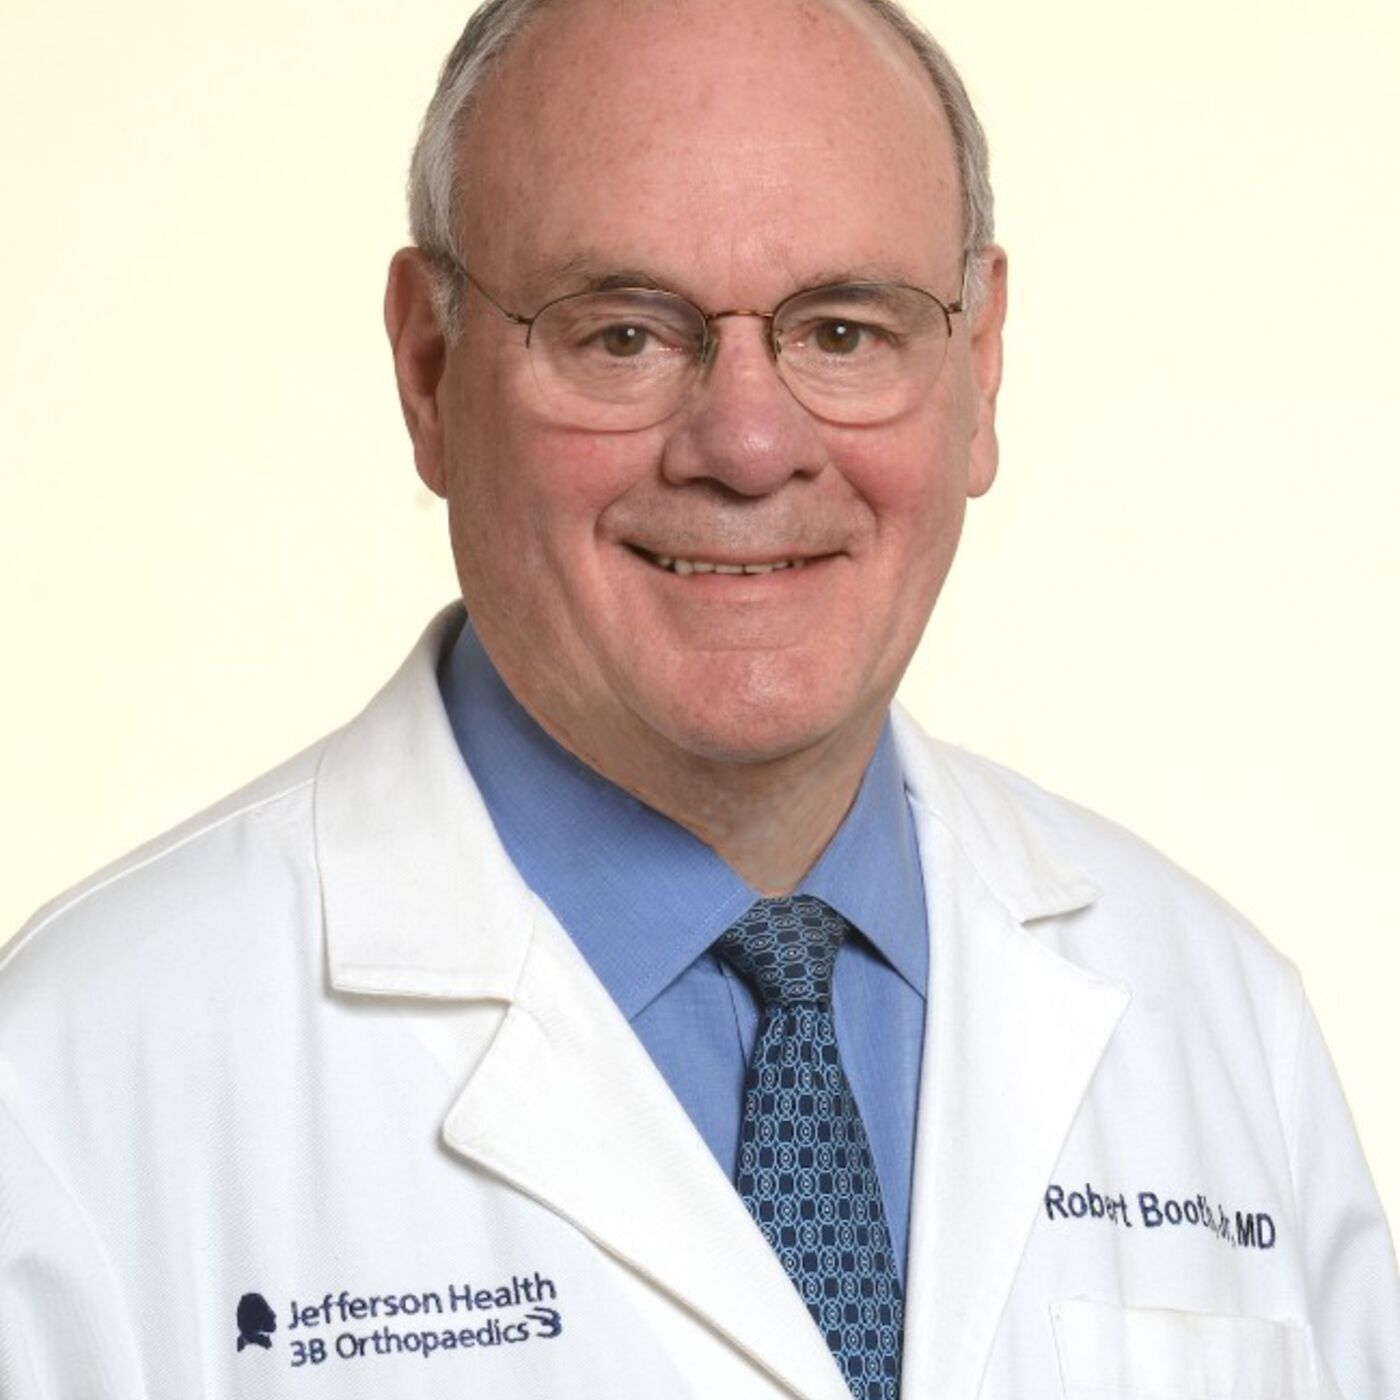 Medical Device Reps Podcast: Dr. Robert E. Booth-Part Two